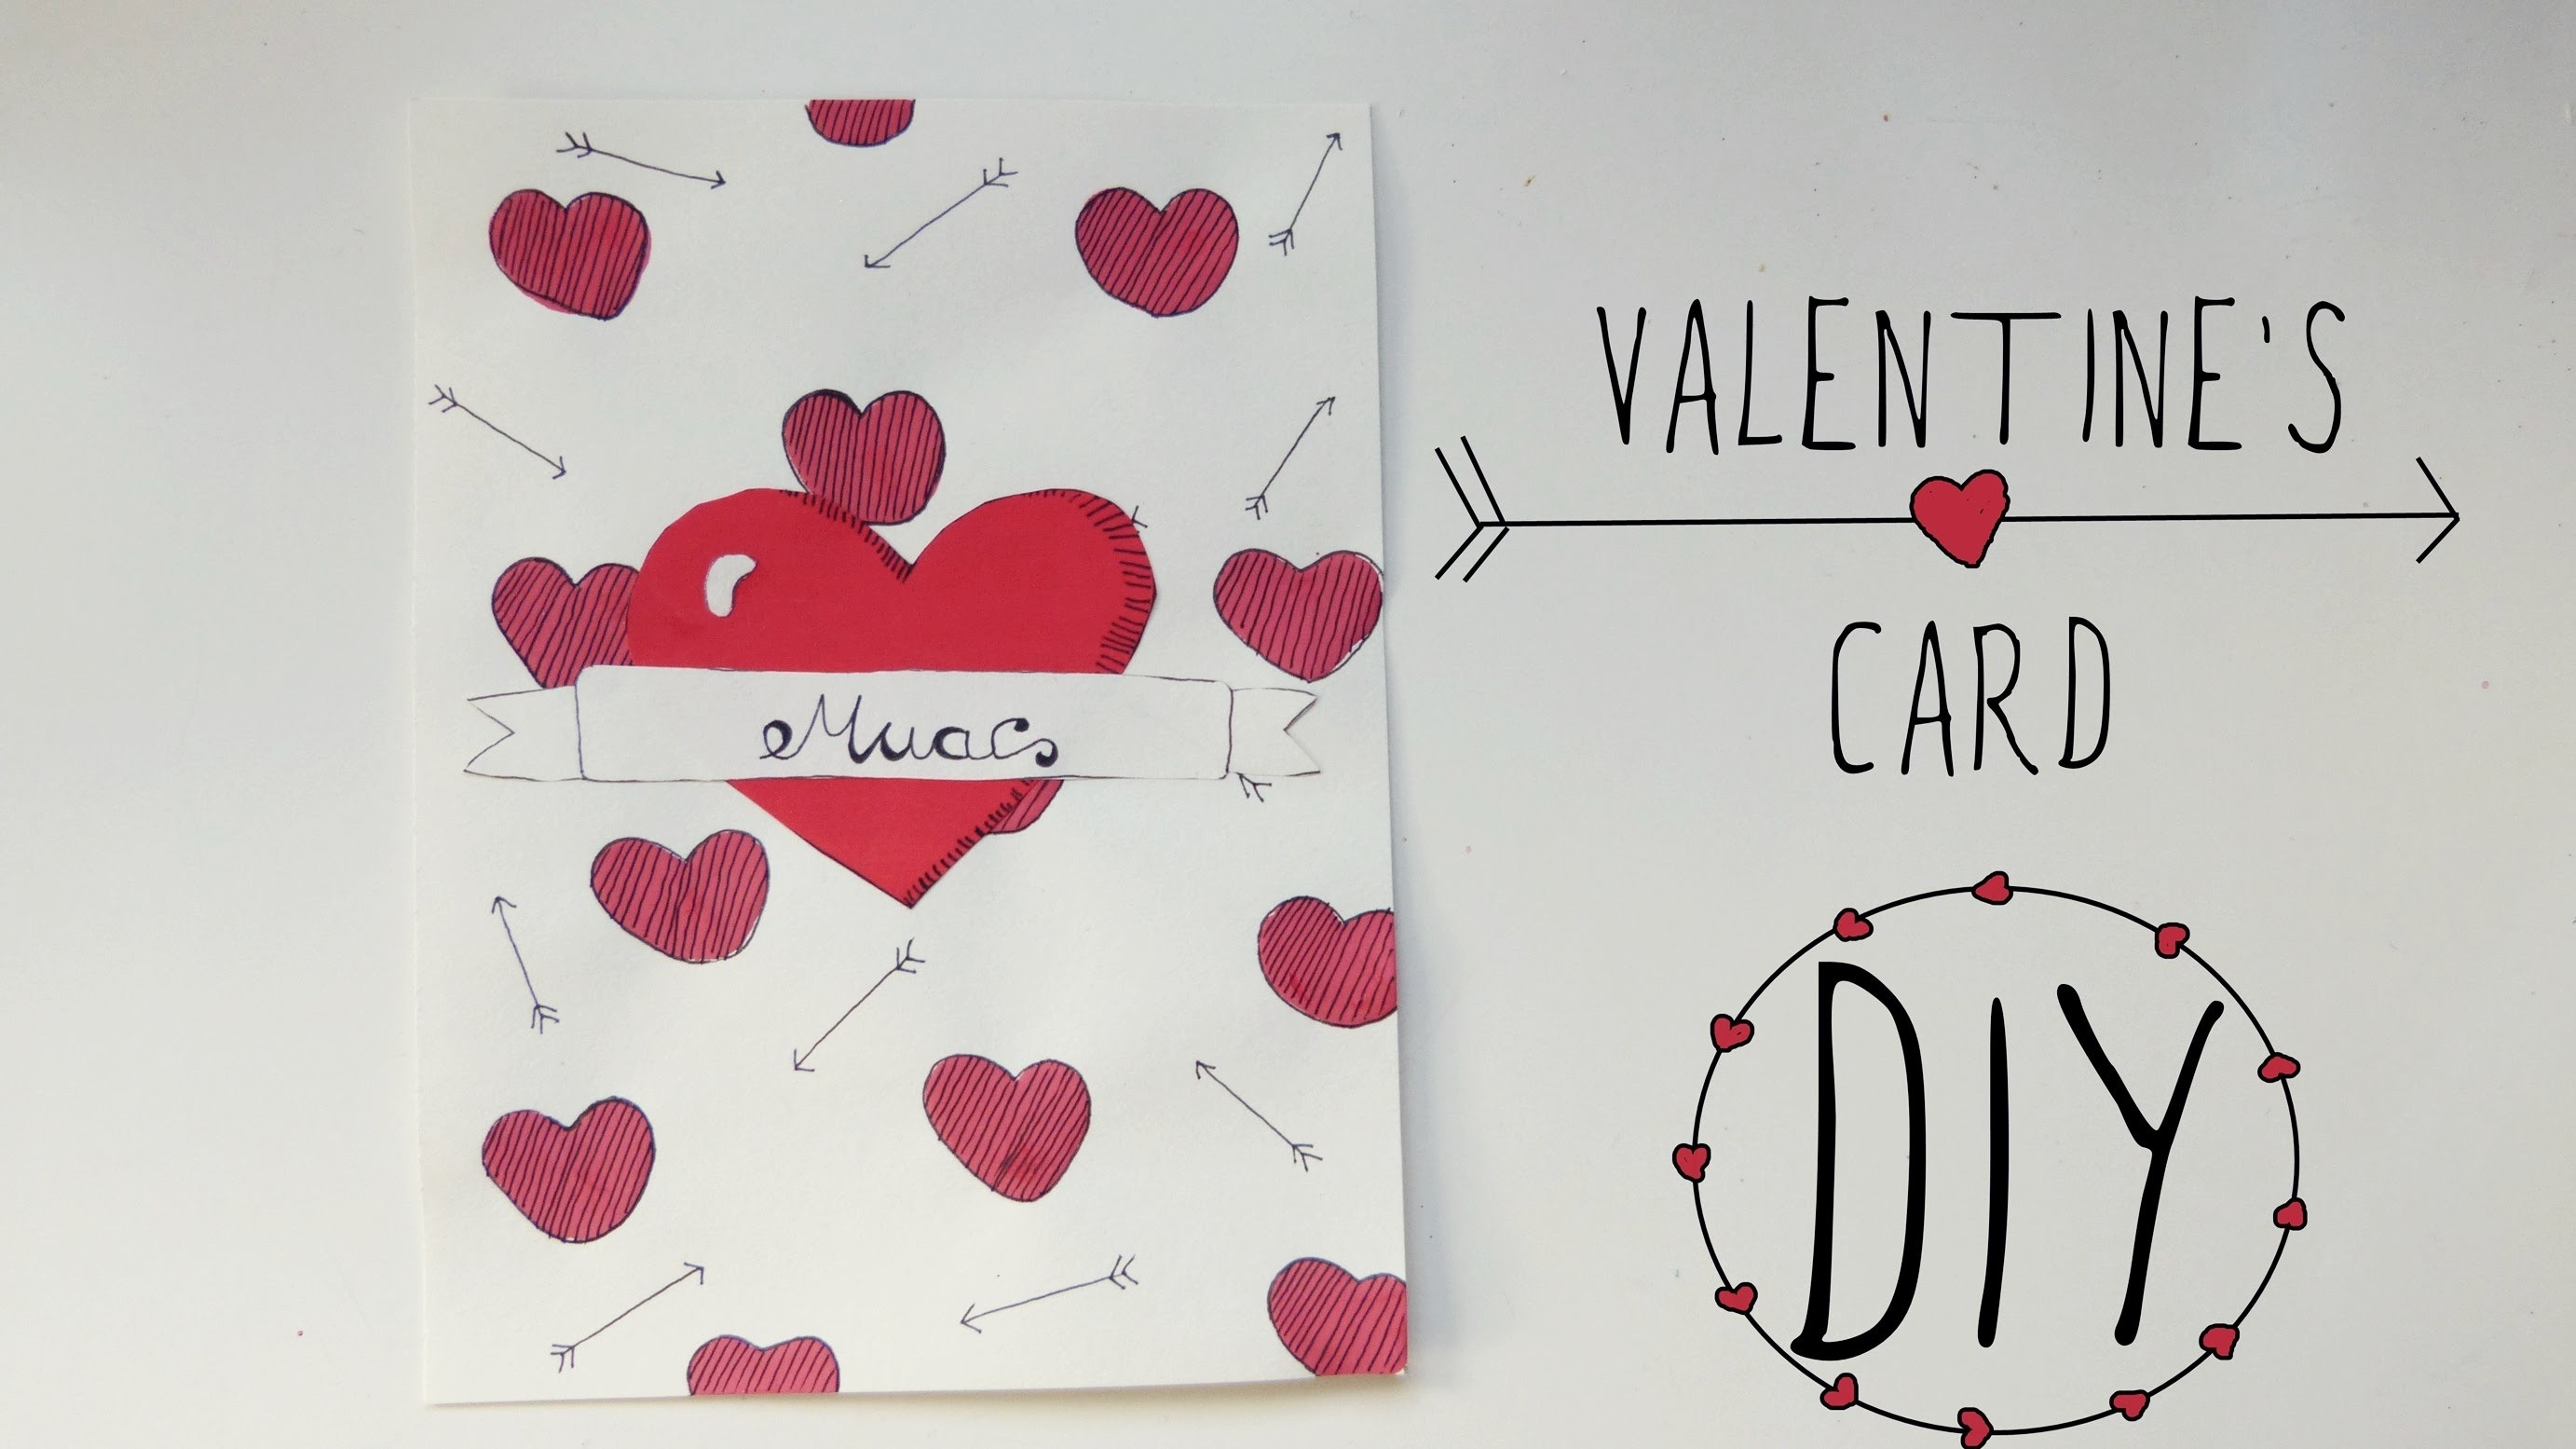 Valentine's Day Crafts: Love Card | Handmade Gift For Boyfriend regarding Love Cards For Him Handmade 28192